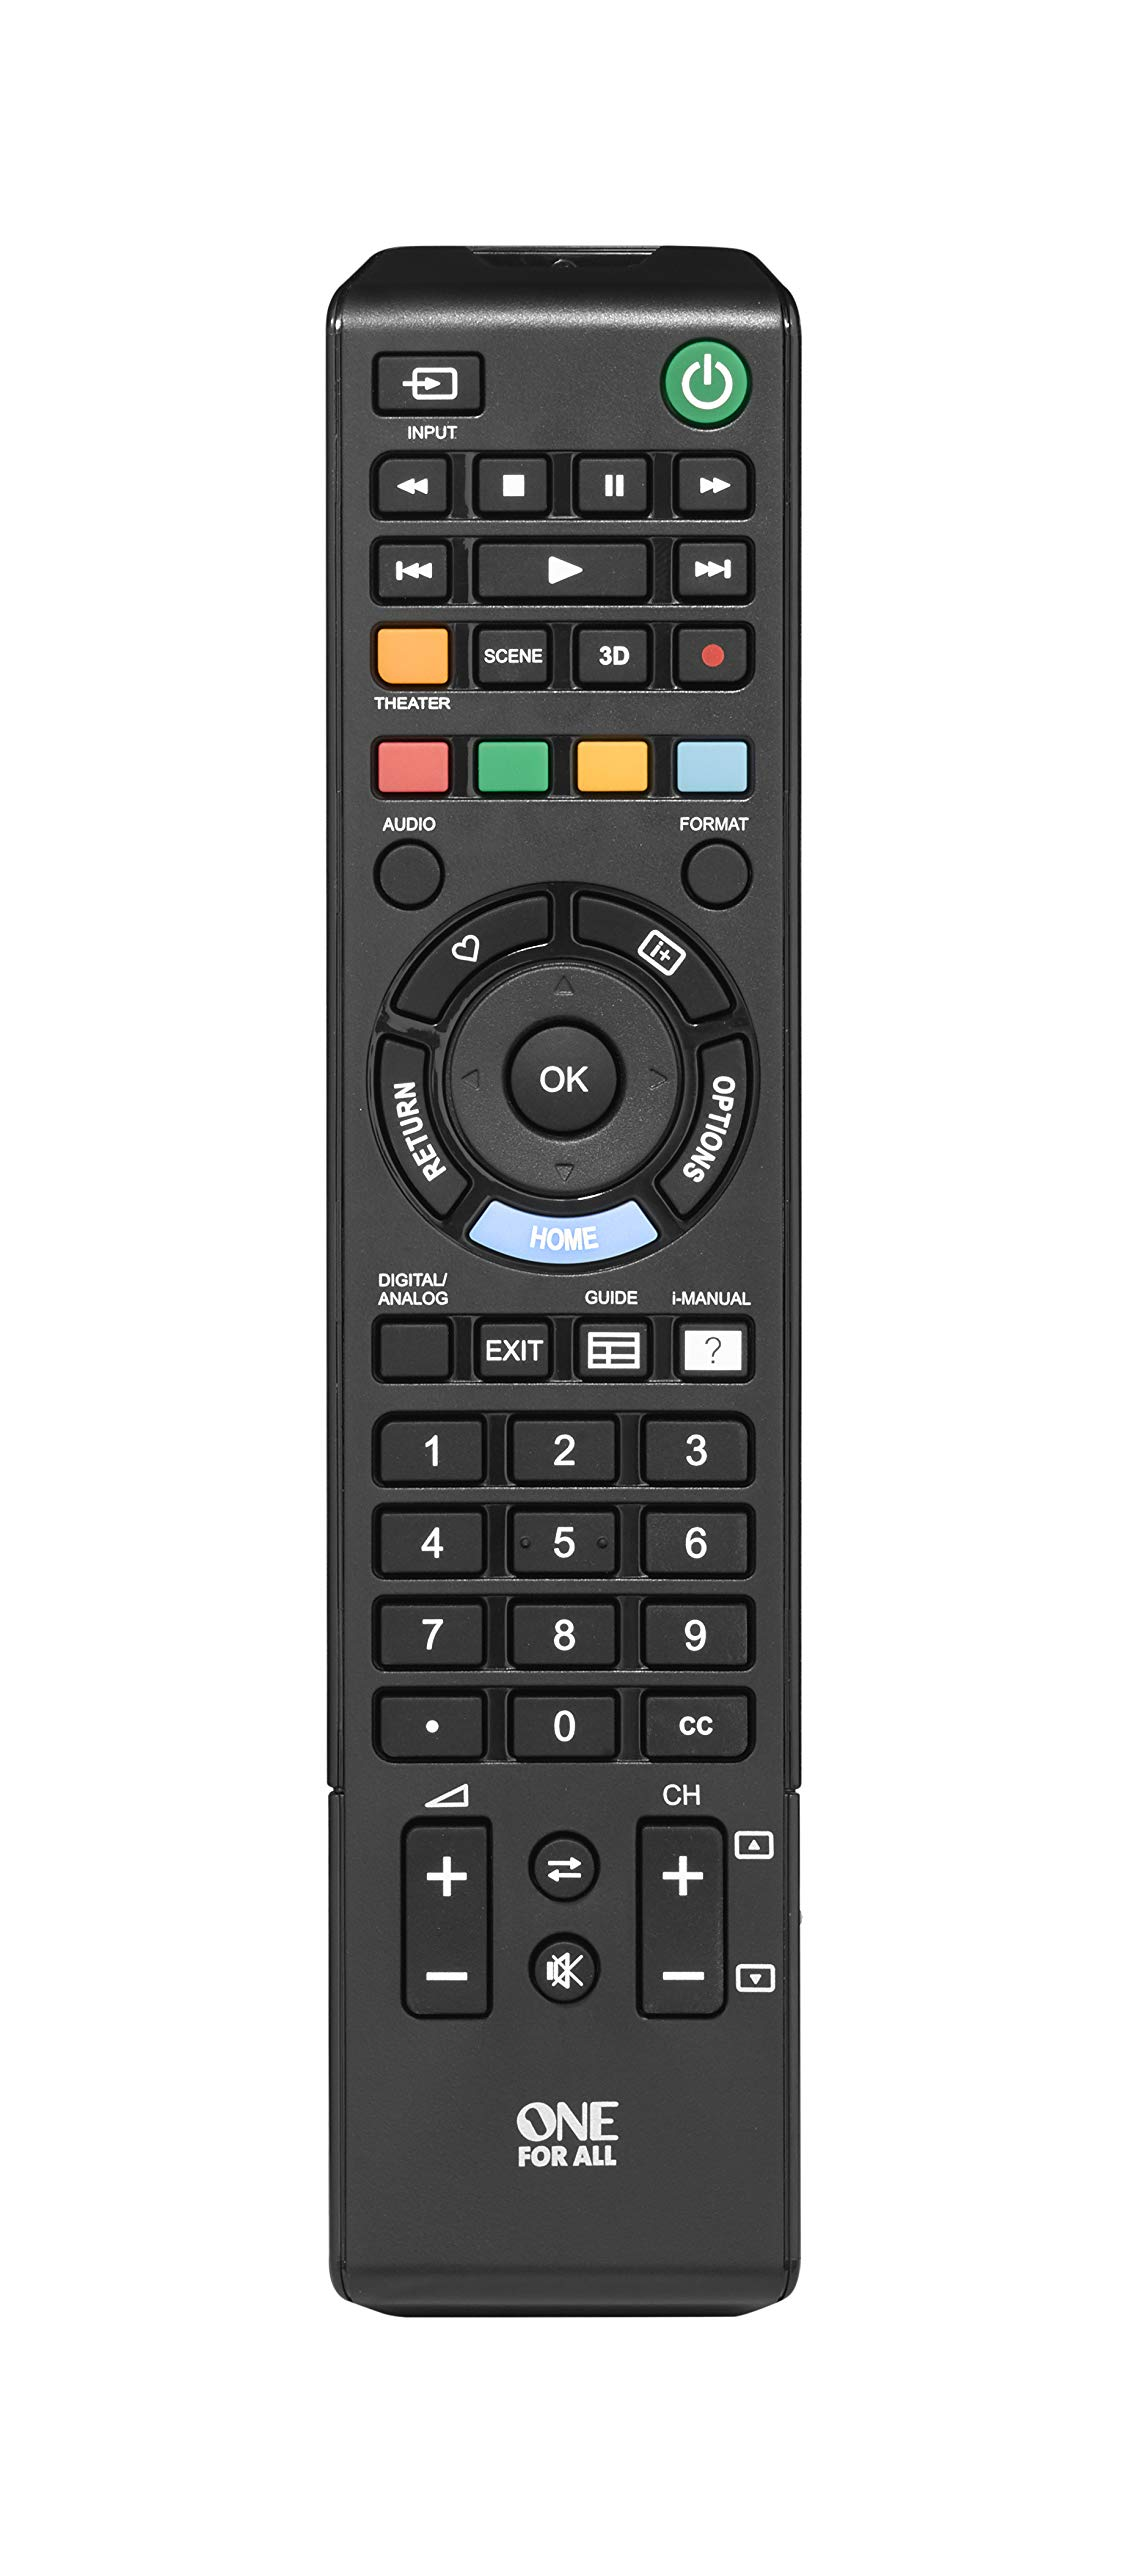 One For All Sony TV Replacement Remote - Works with All Sony Televisions (LED, LCD, Plasma) - Ideal TV Replacement Remote Control with Same Functions as The Original Sony Remote - Black - Urc1812 by One For All (Image #2)